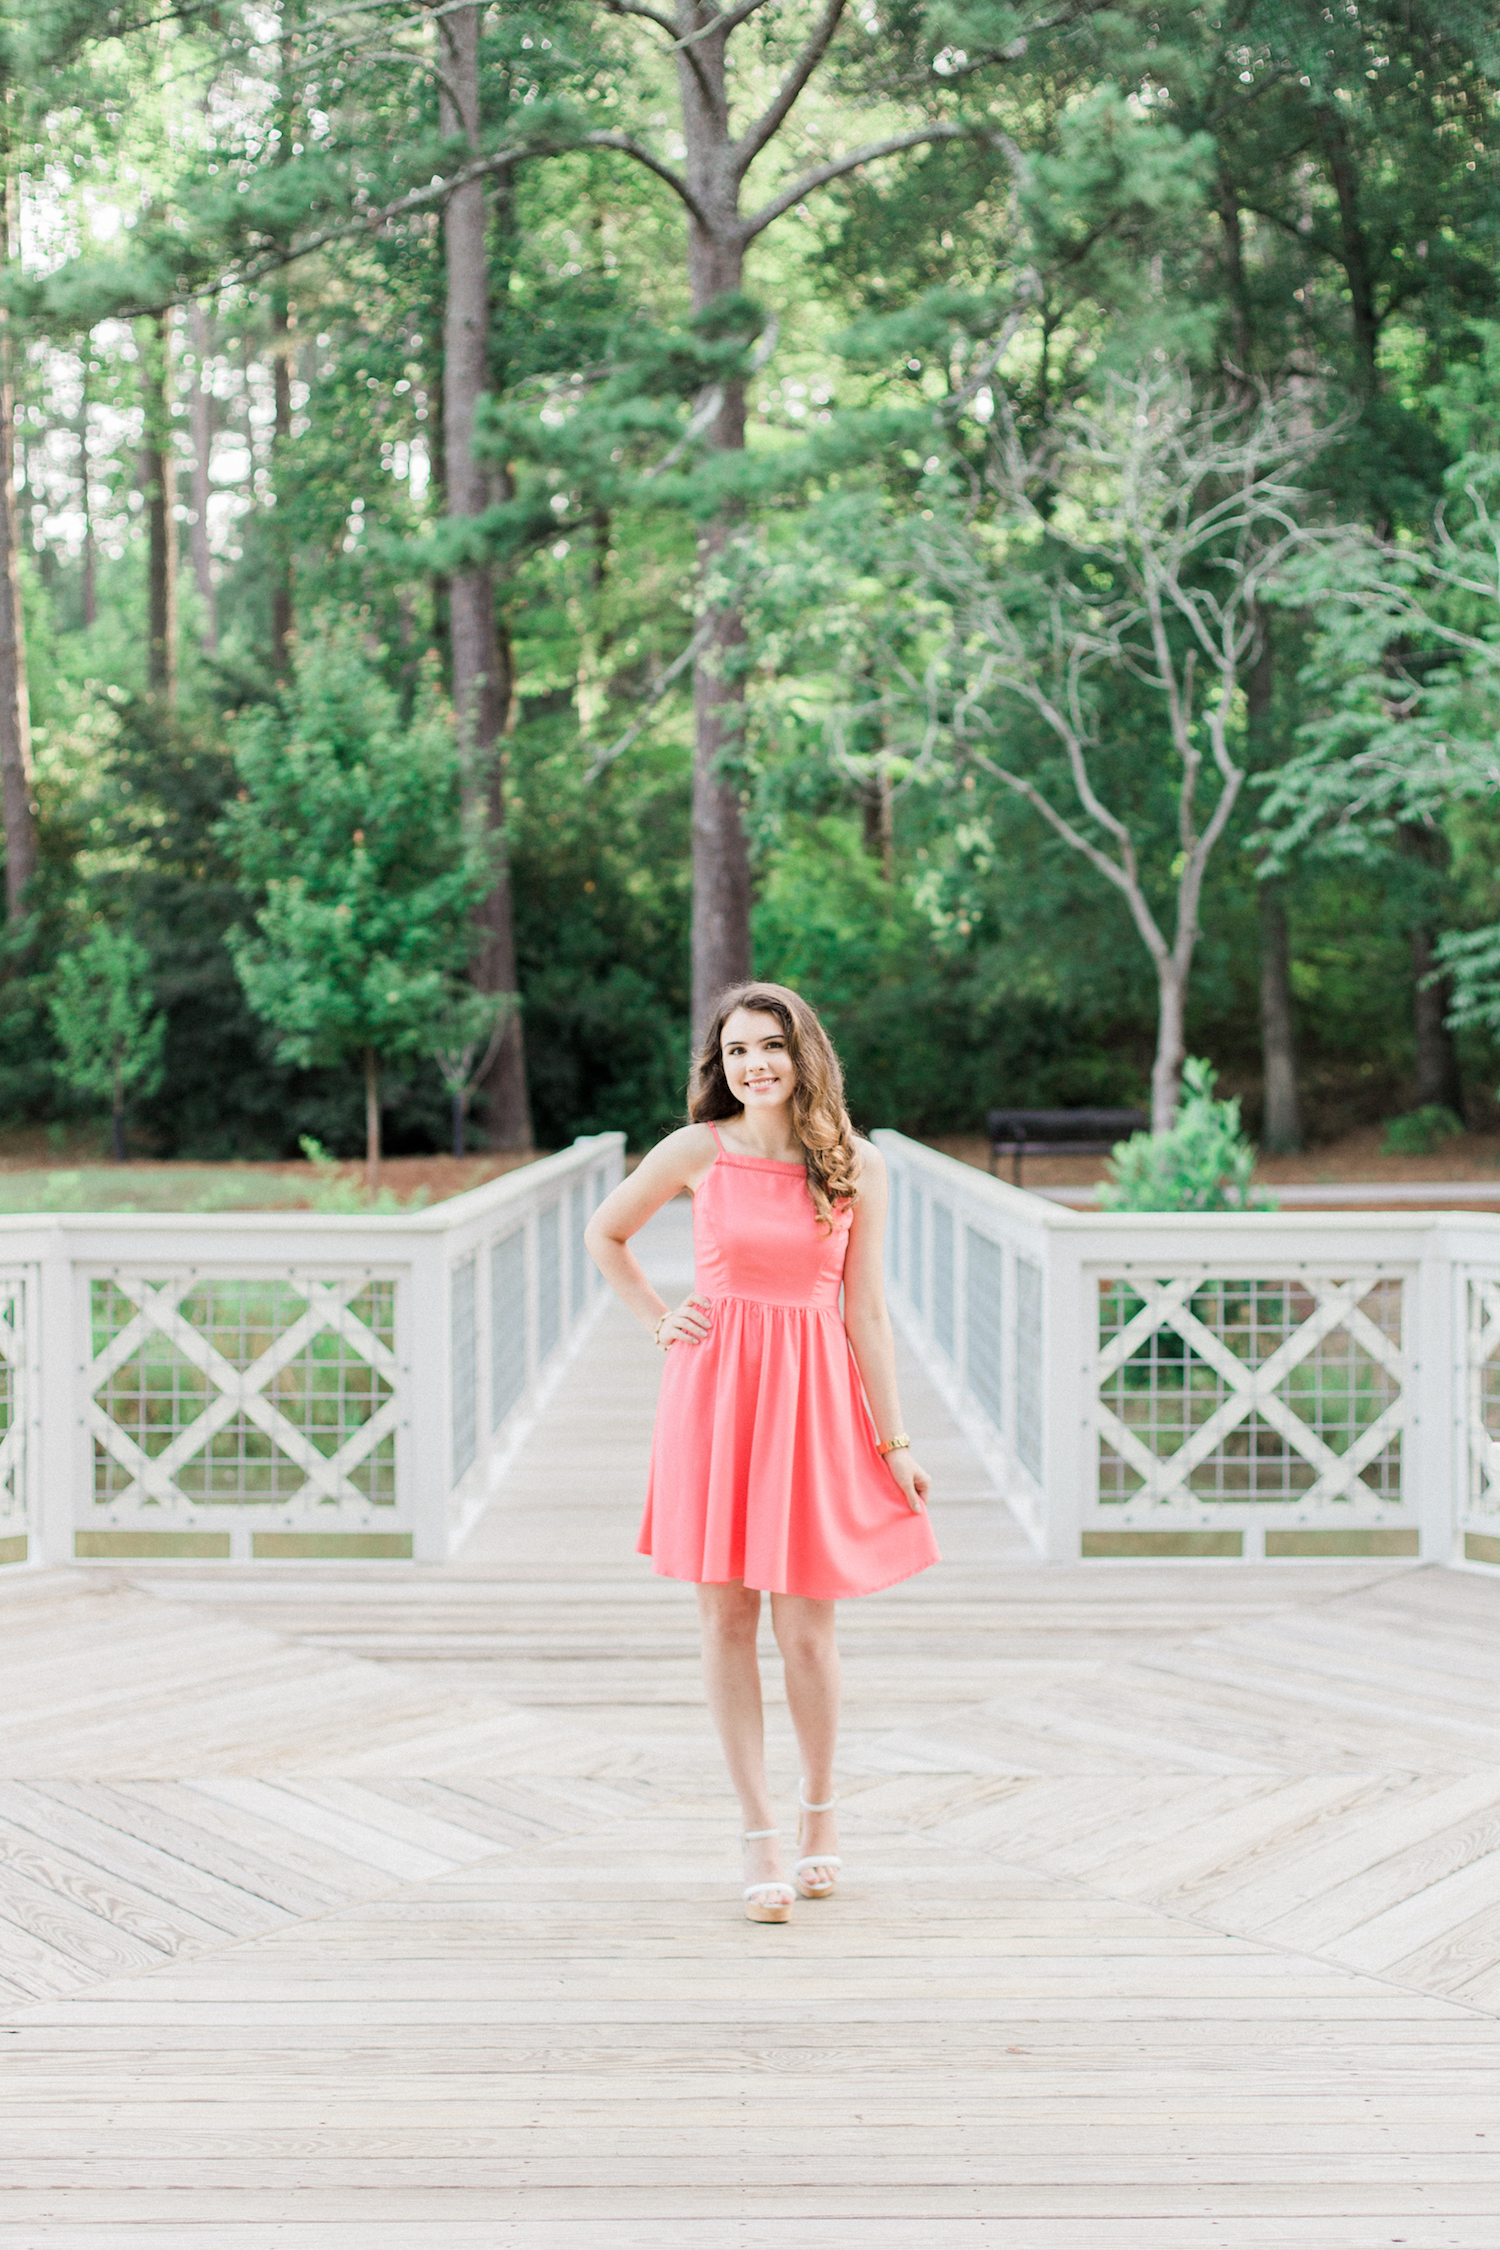 Summer time high school senior session at Vine Mansion Park by Kesia Marie Photography. Featuring feminine, garden details.